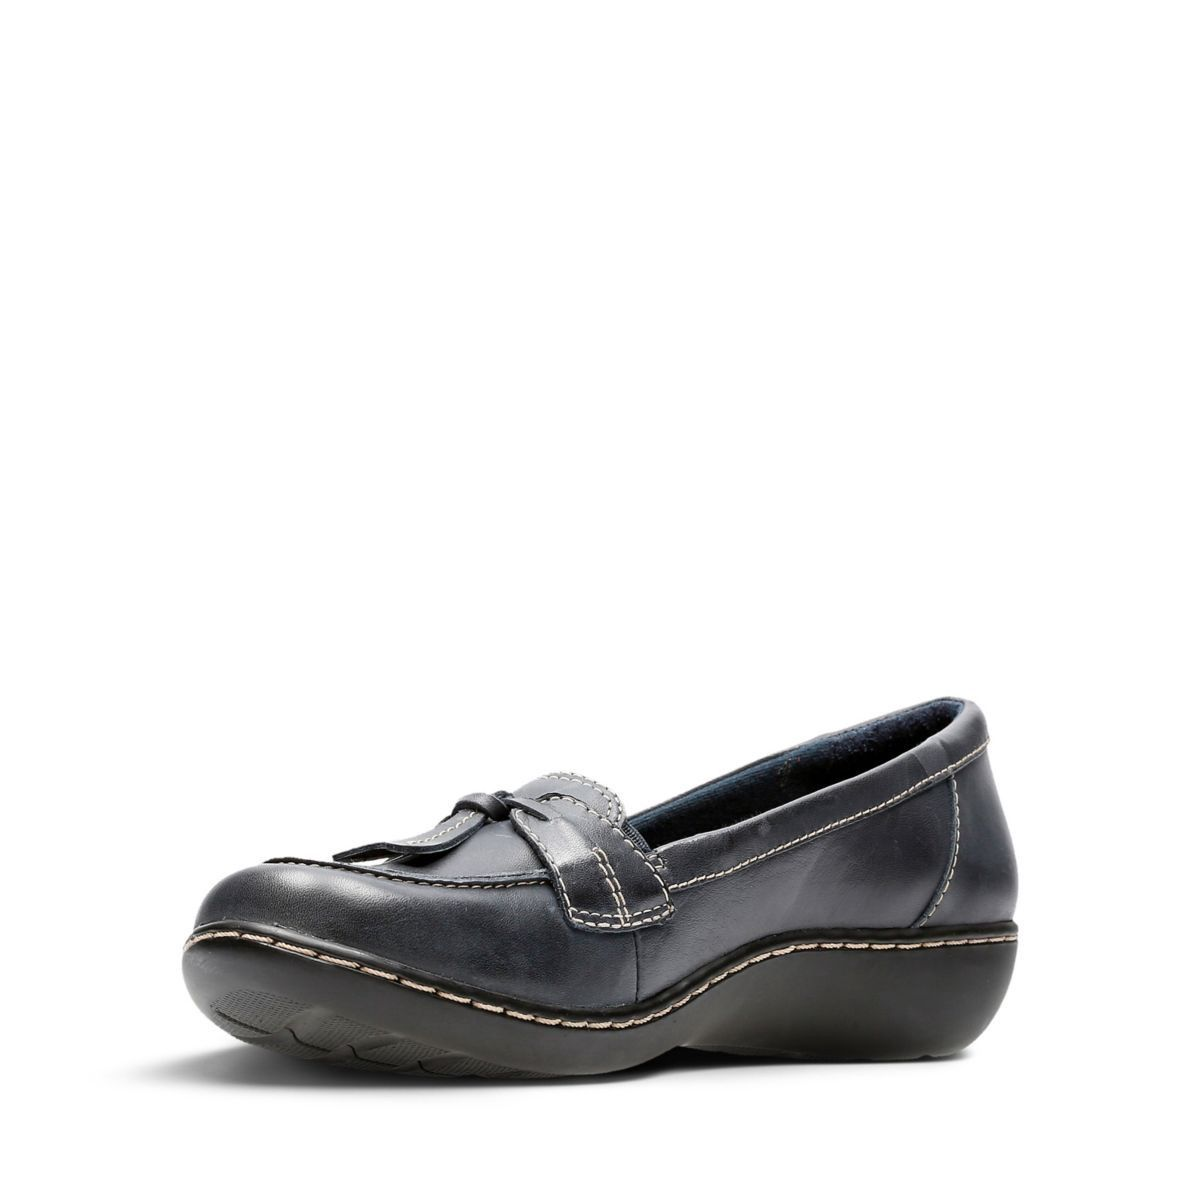 Womens Shoes Navy 6.5 Ee (Extra Wide